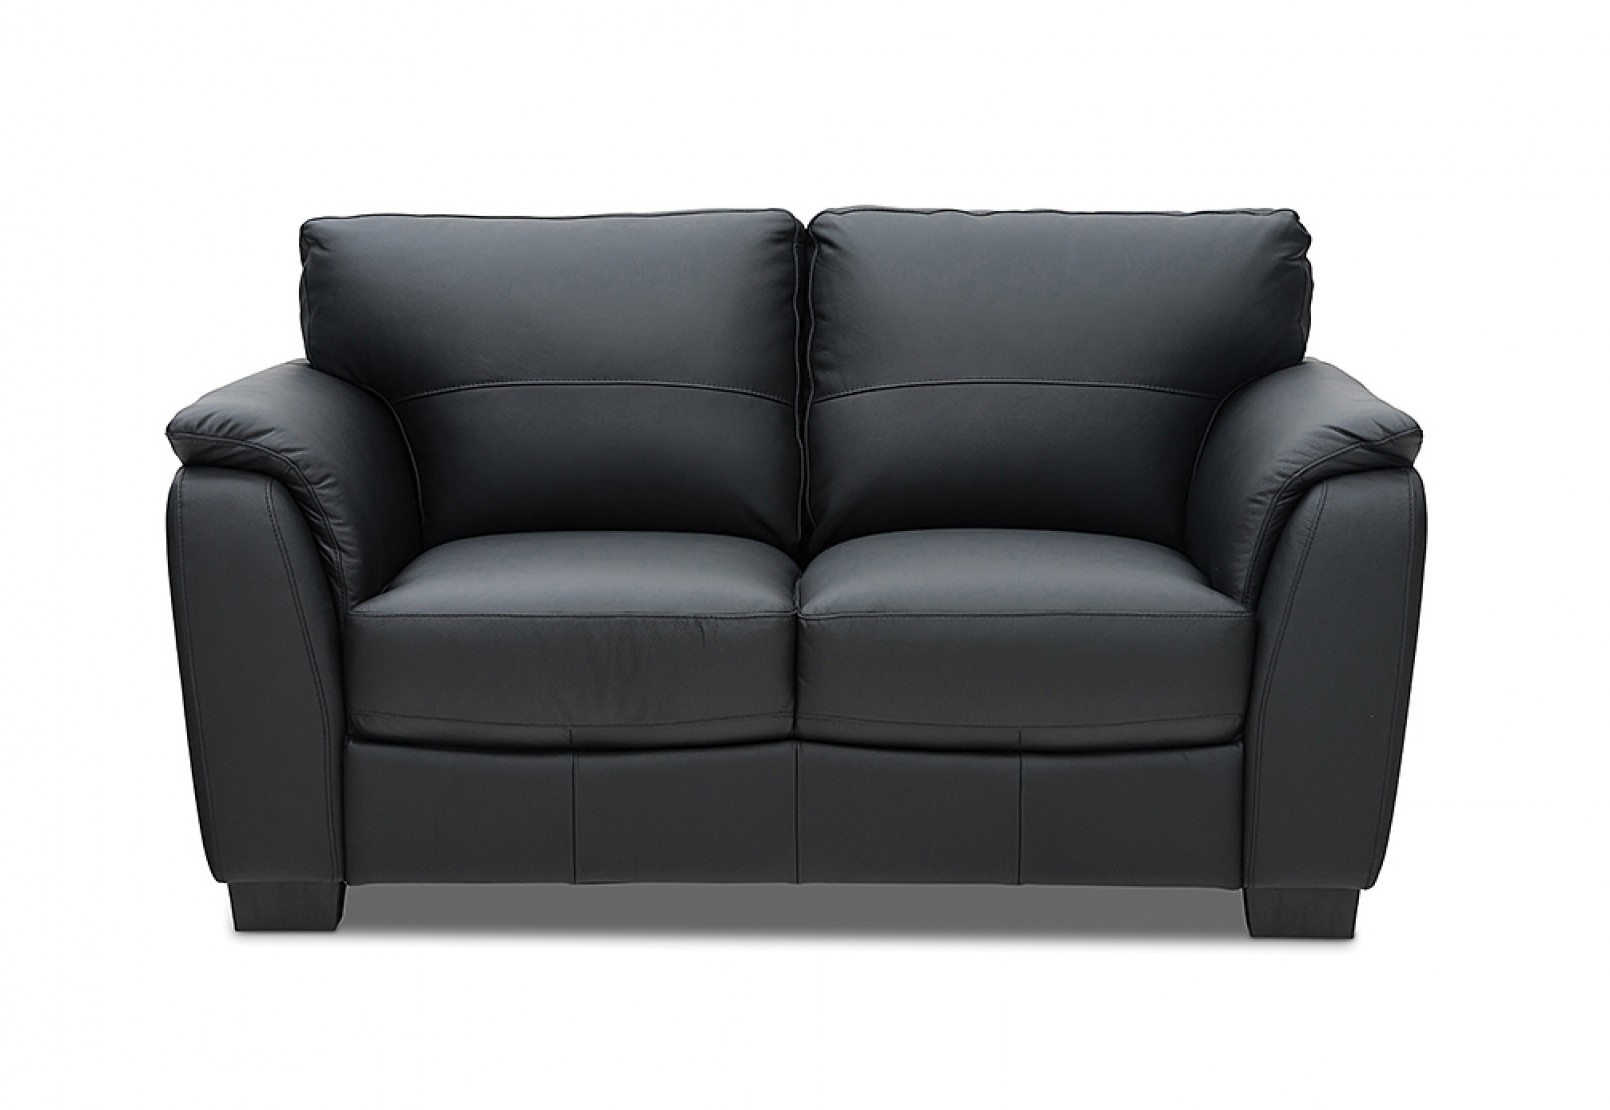 Marissa Leather 2 Seater Sofa | Amart Furniture In Marissa Sofa Chairs (Photo 3 of 20)